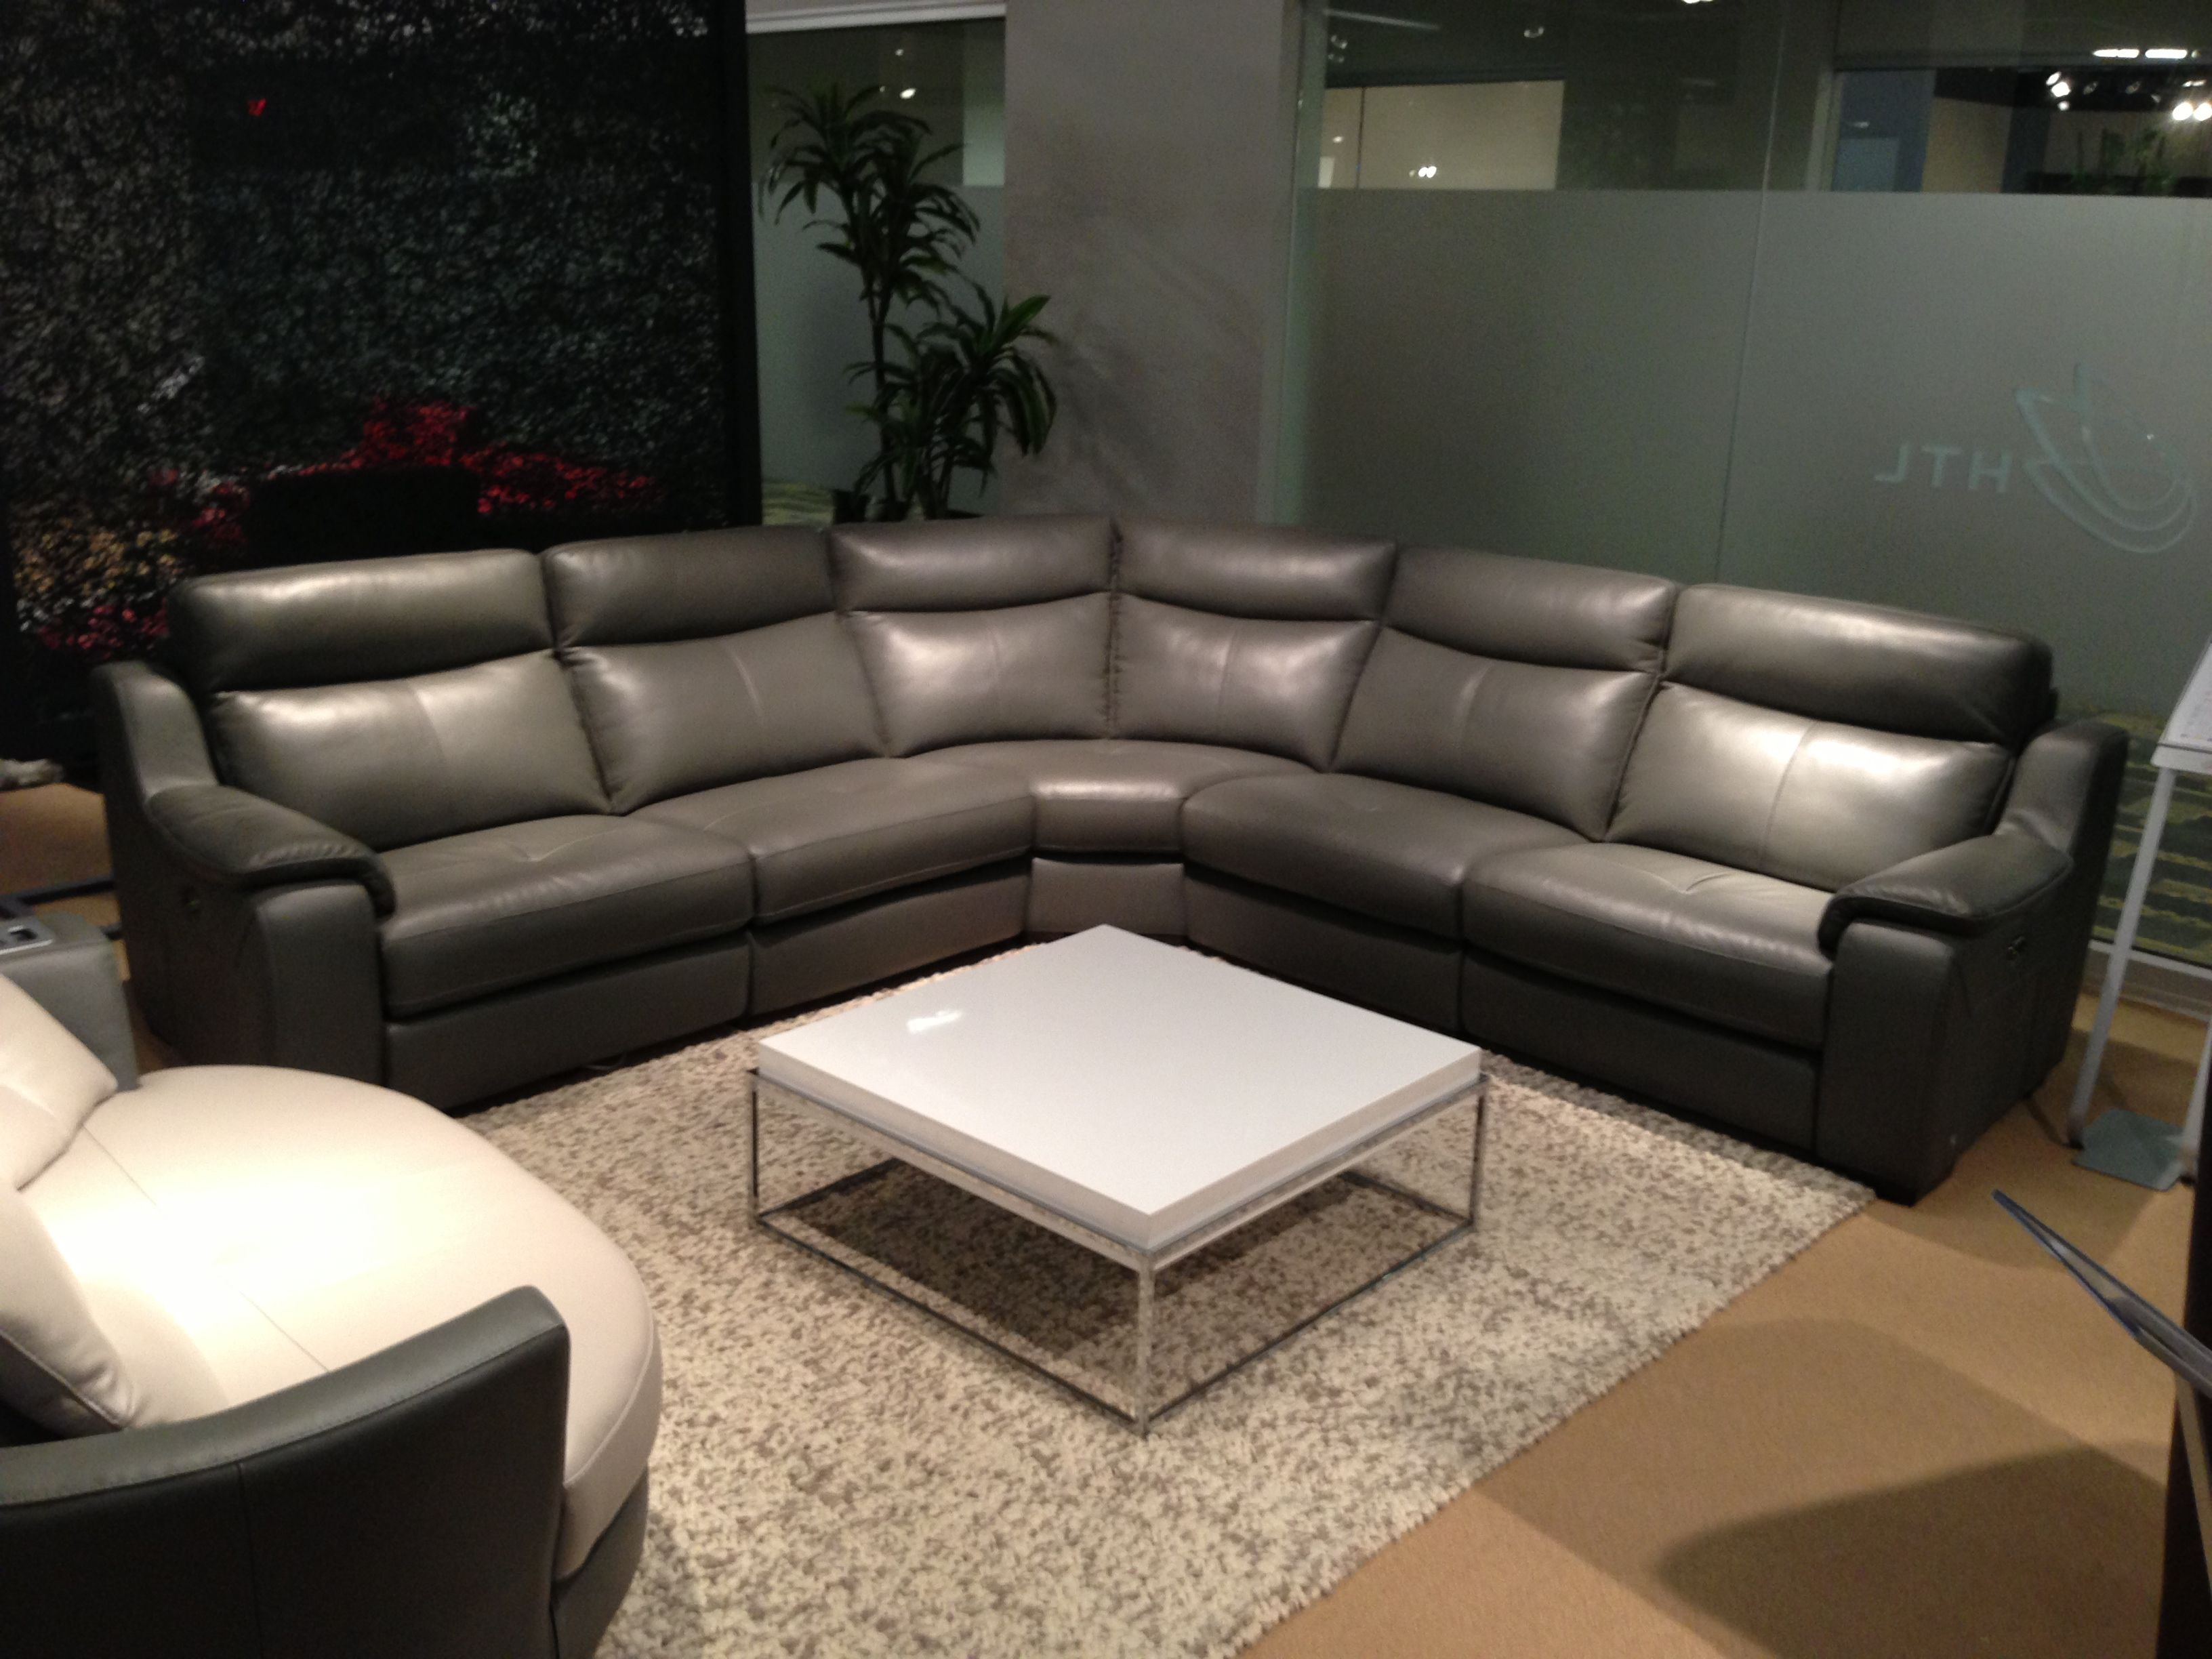 HLT Gray Leather Sectional Furniture Pinterest Leather sectional